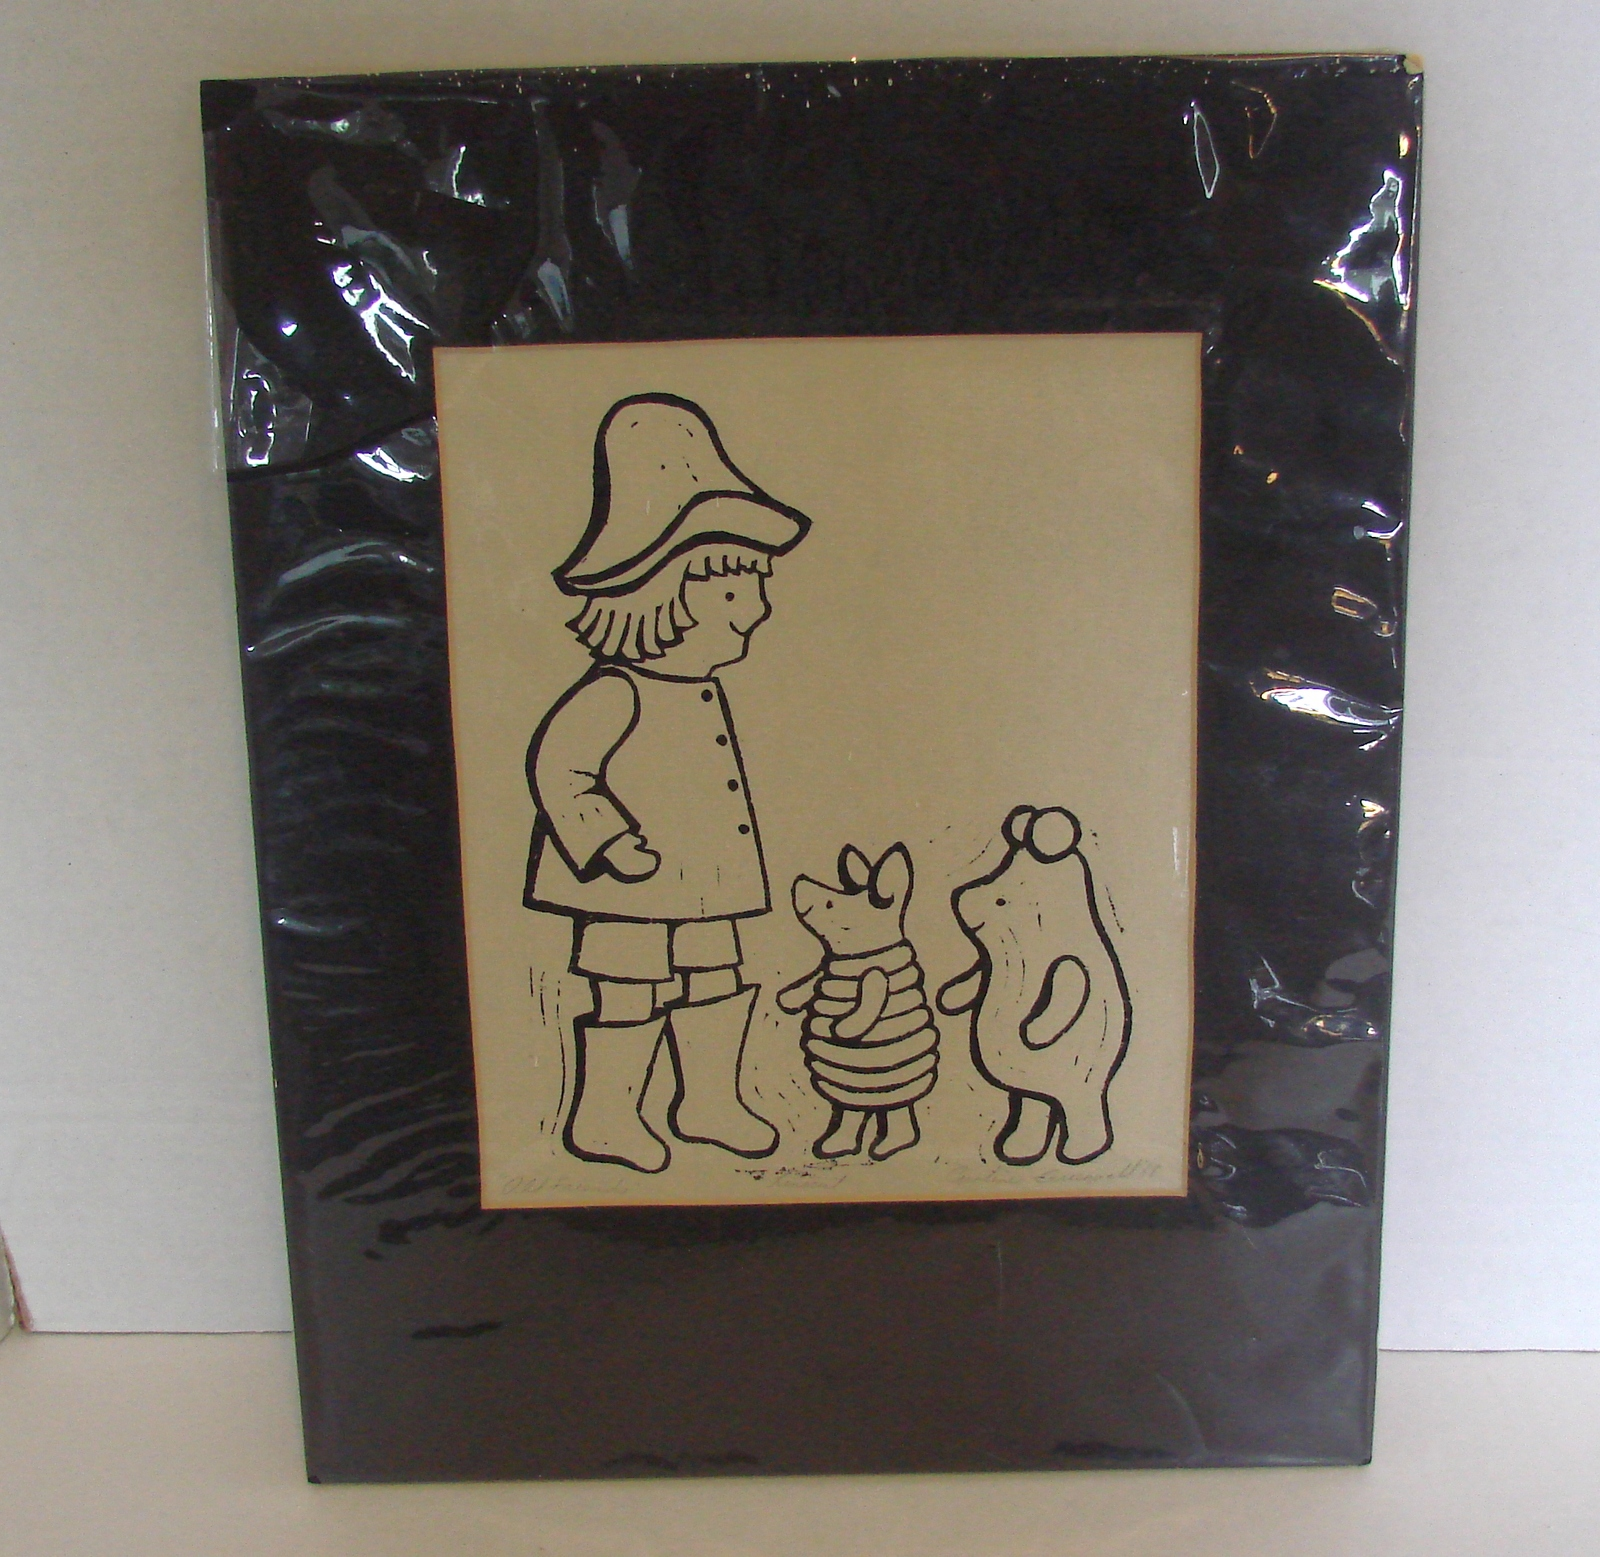 Primary image for  Signed and Matted Caroline Greenwald Linocut Print